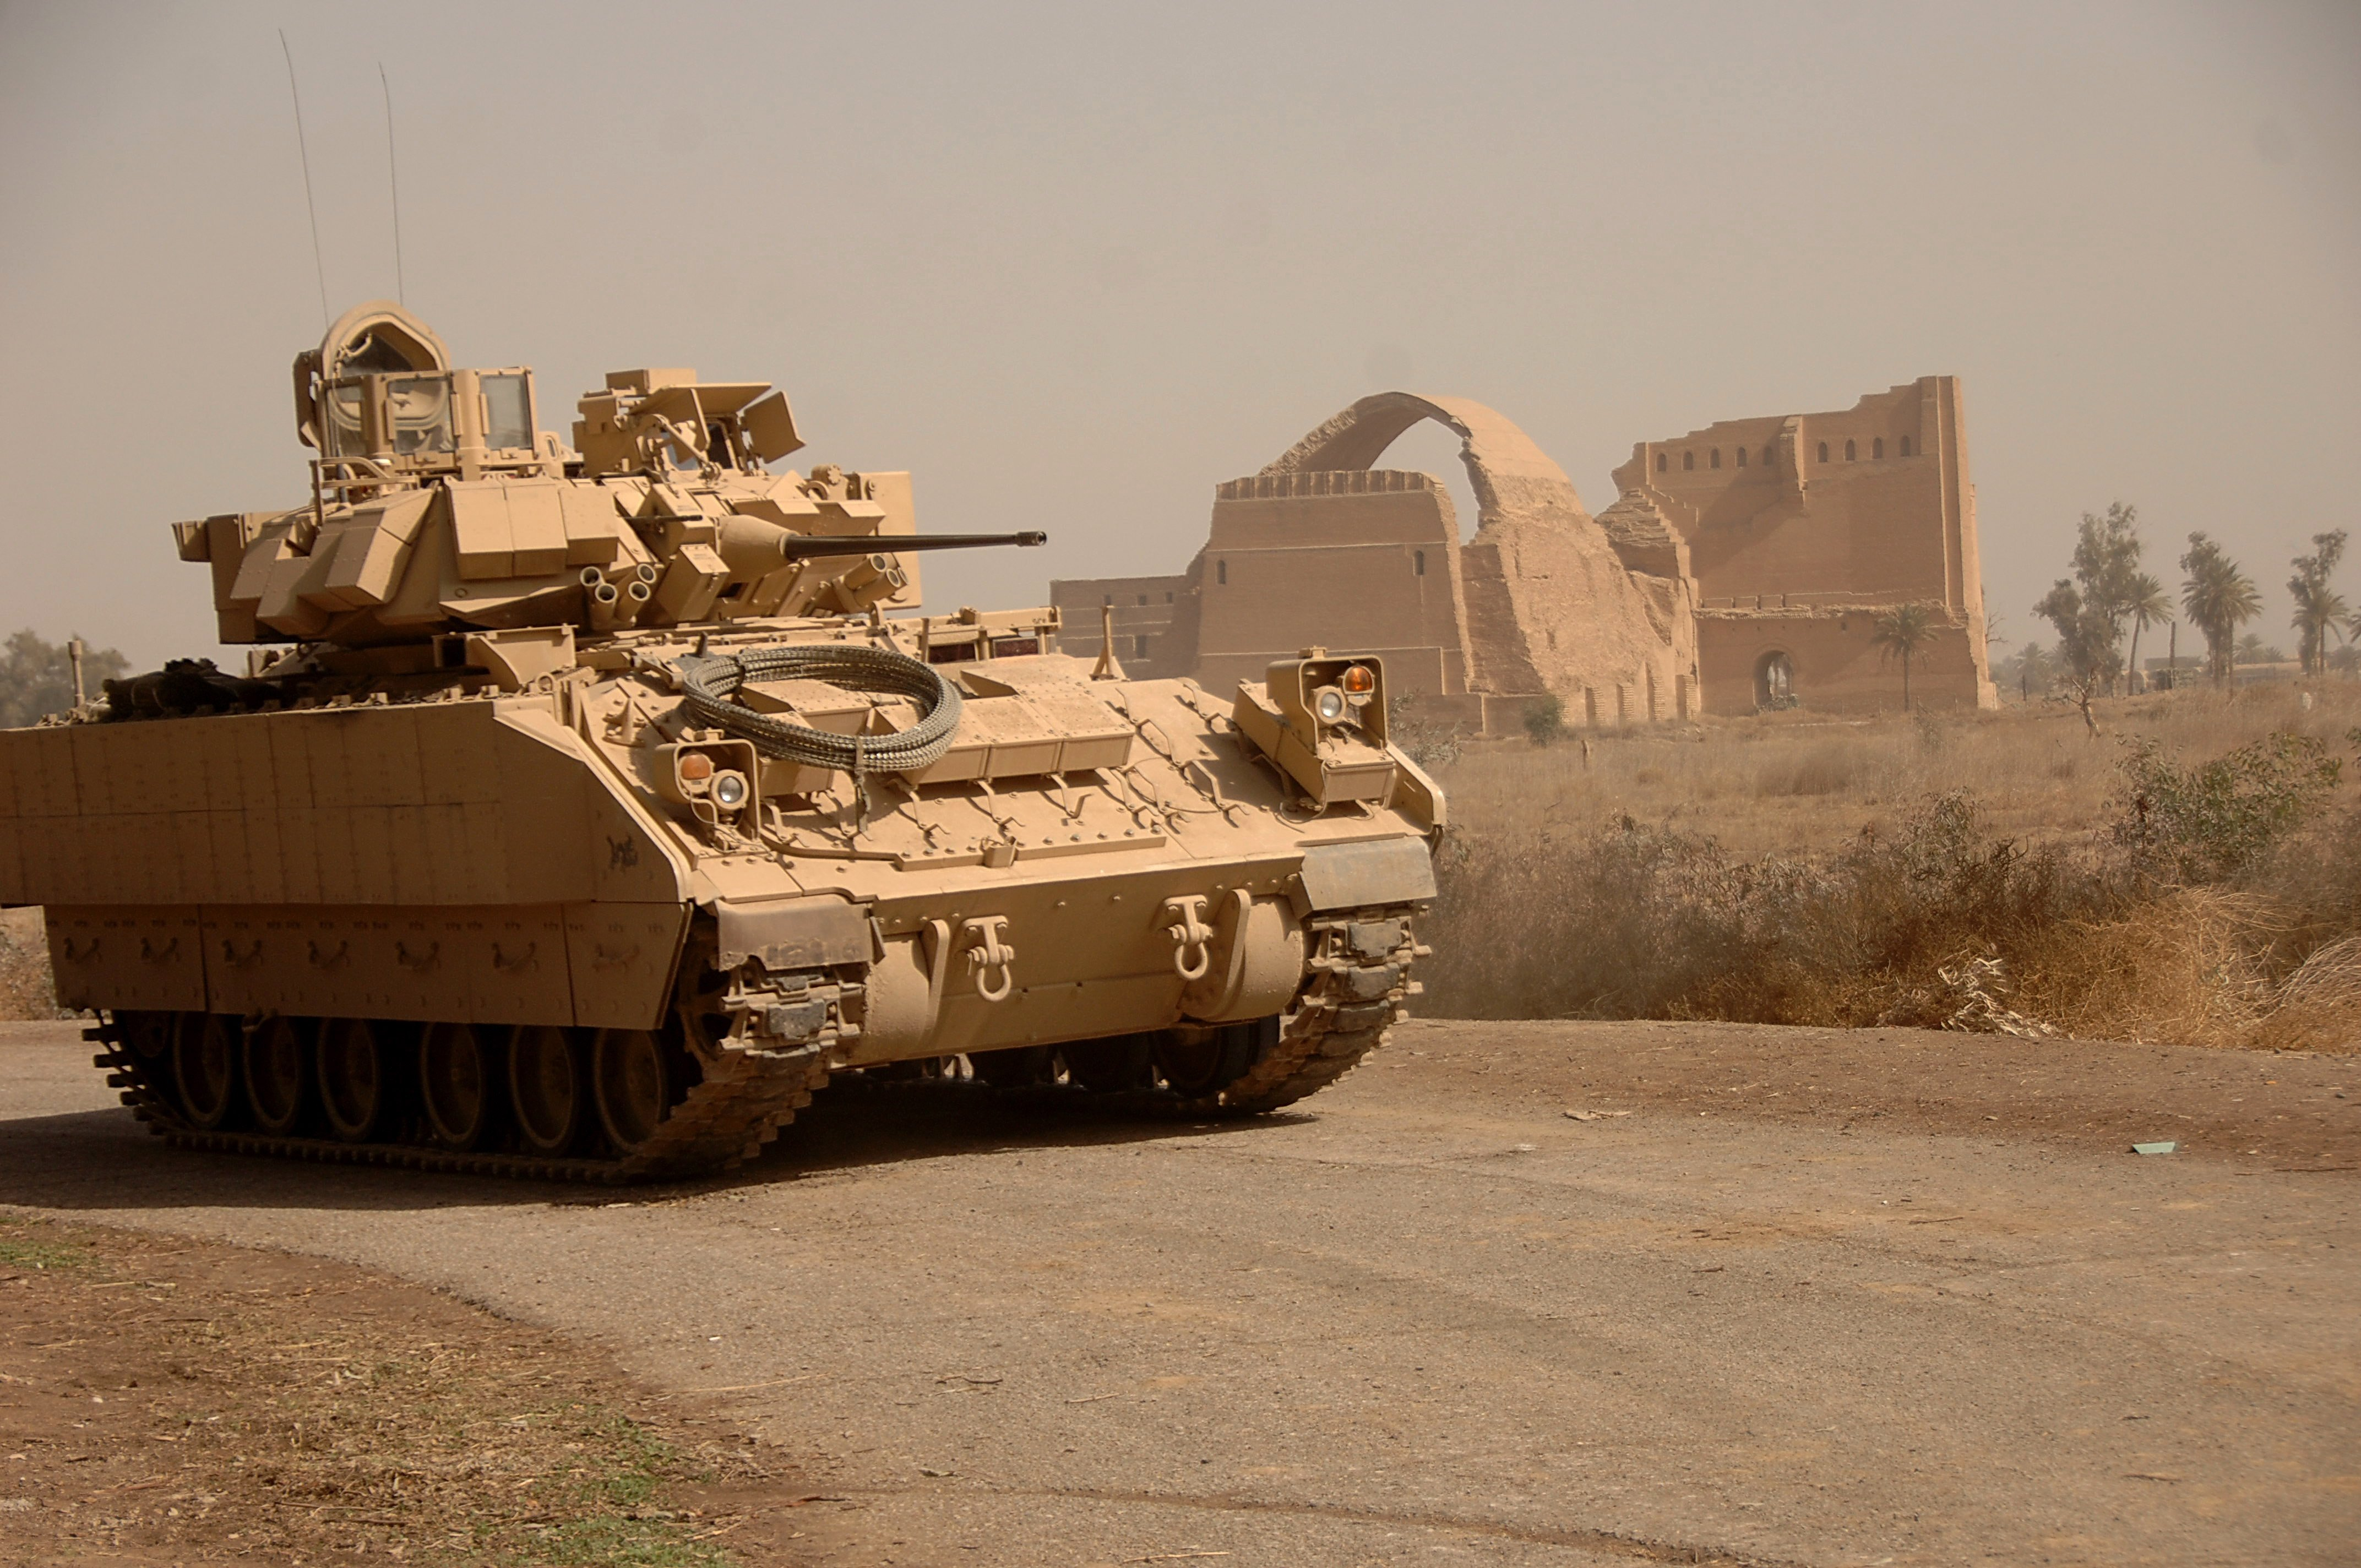 BRADLEY FIGHTING VEHICLE Bfv Apc Tank Tanks Transport Weapon Military 21 Wallpaper